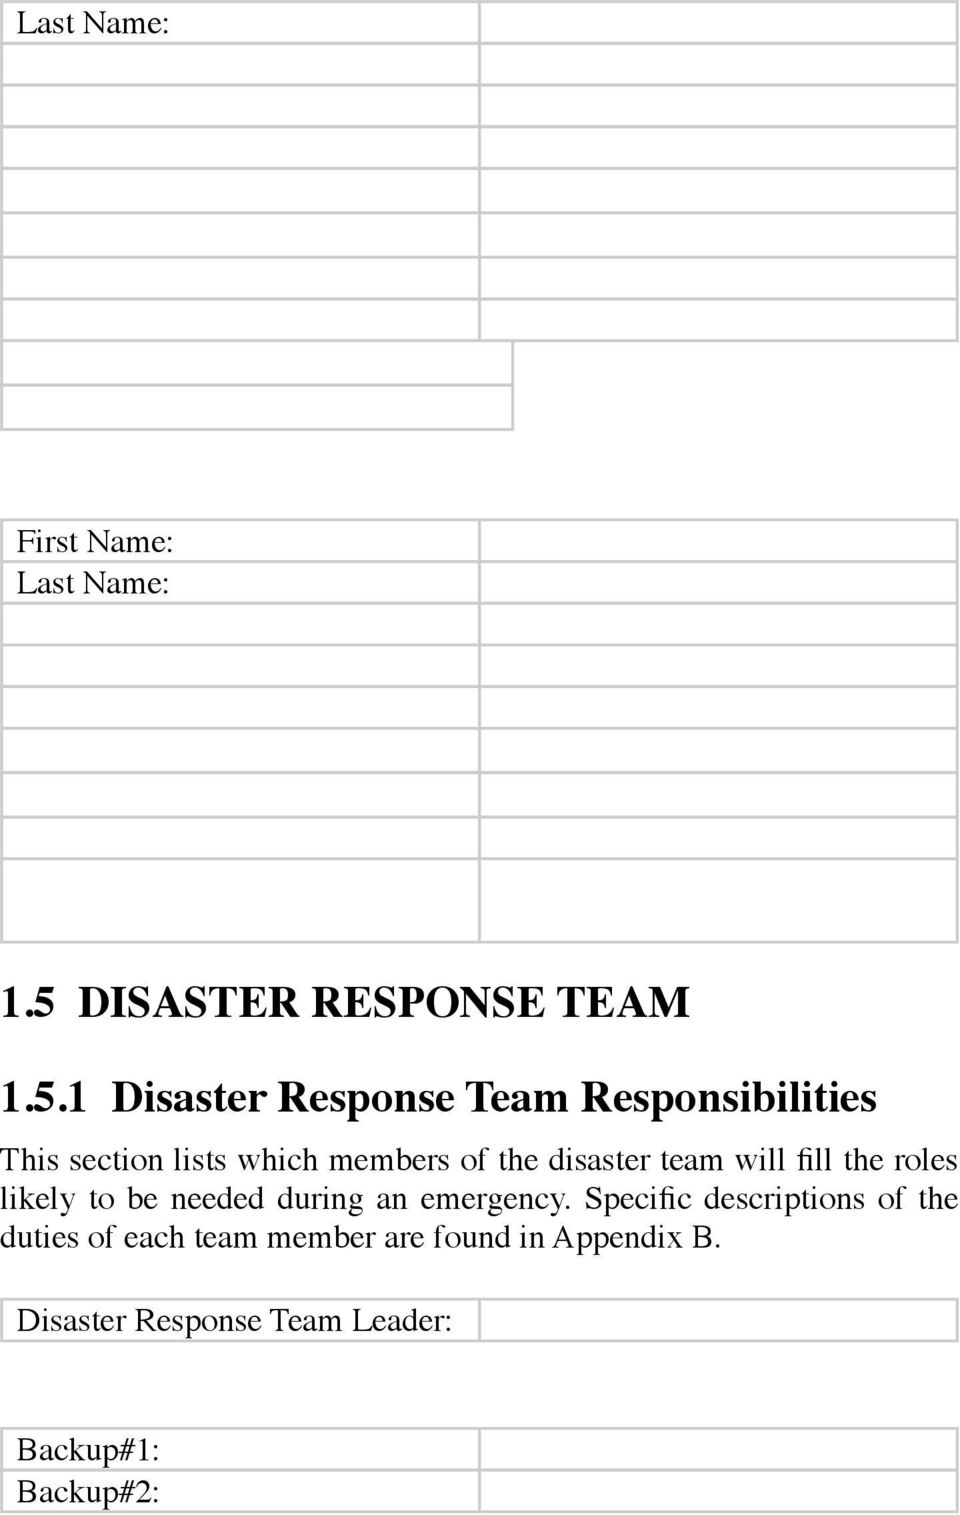 1 Disaster Response Team Responsibilities This section lists which members of the